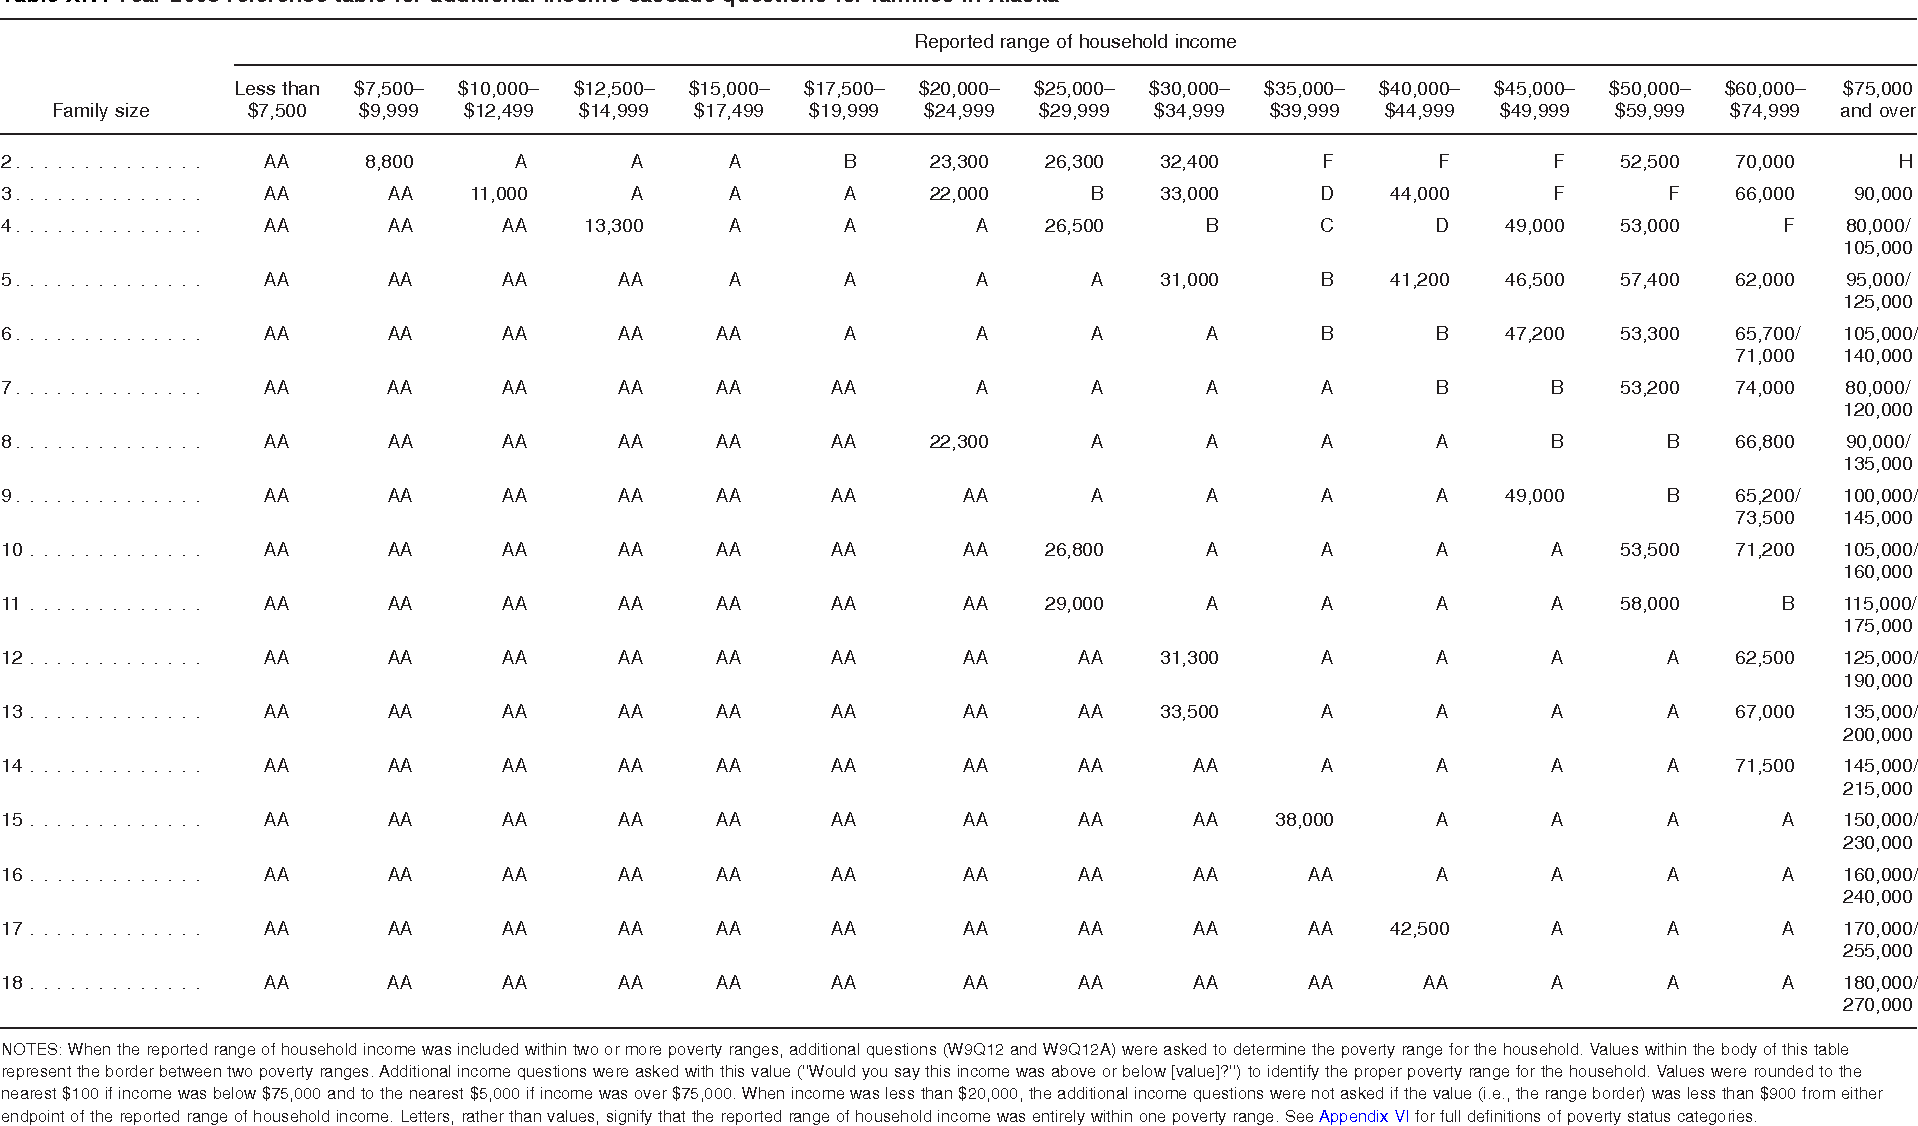 Table XIV. Year 2008 reference table for additional income cascade questions for families in Alaska